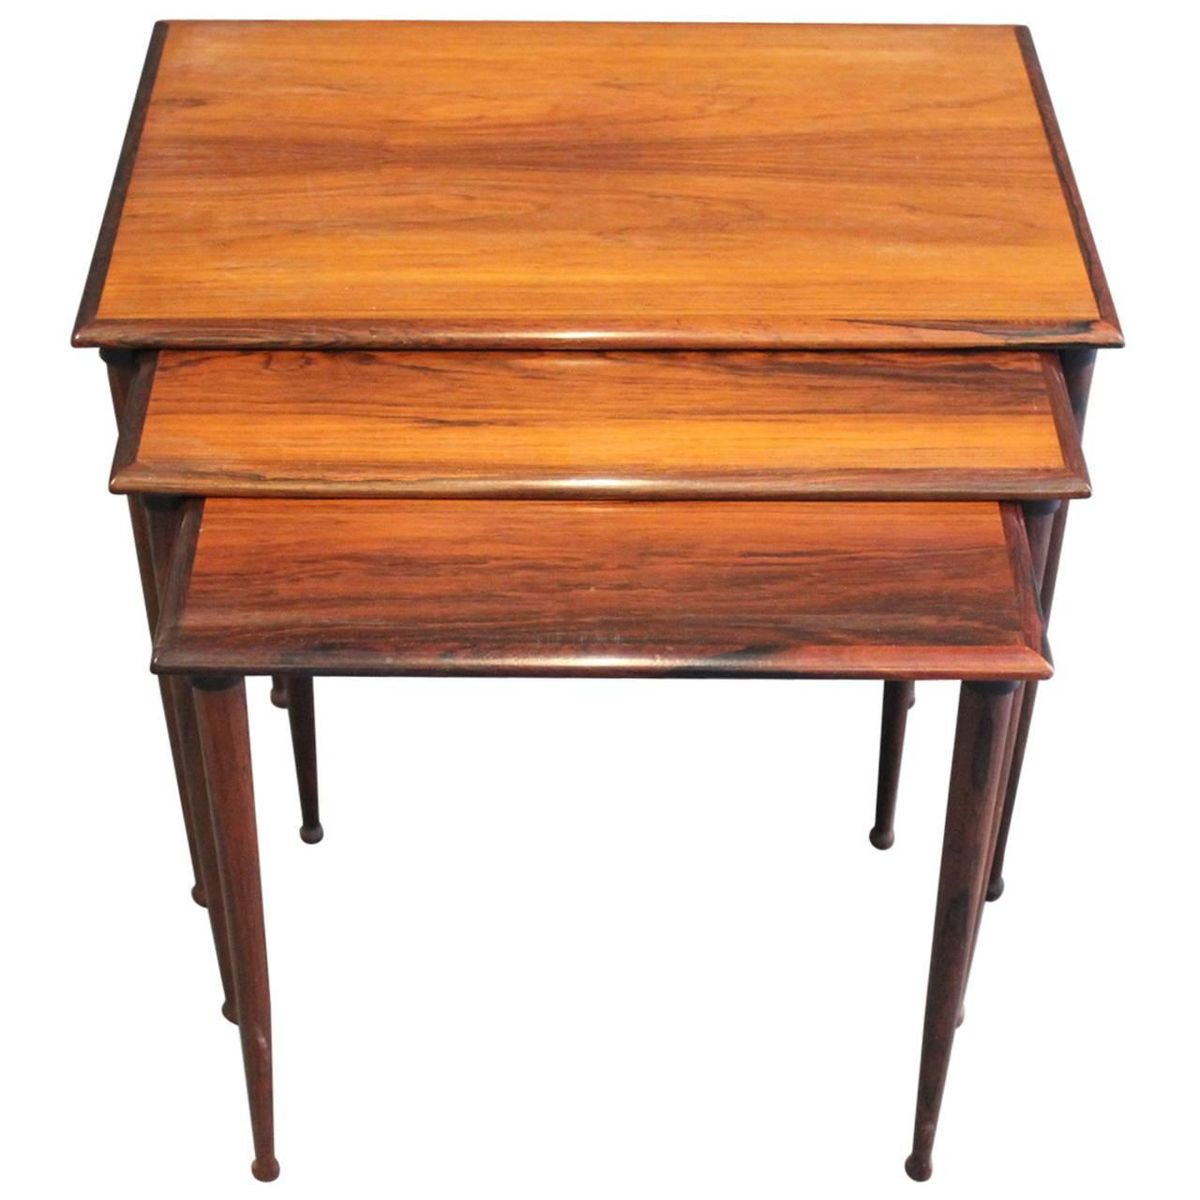 Rosewood Nesting Tables by BC Furniture 1960s for sale at